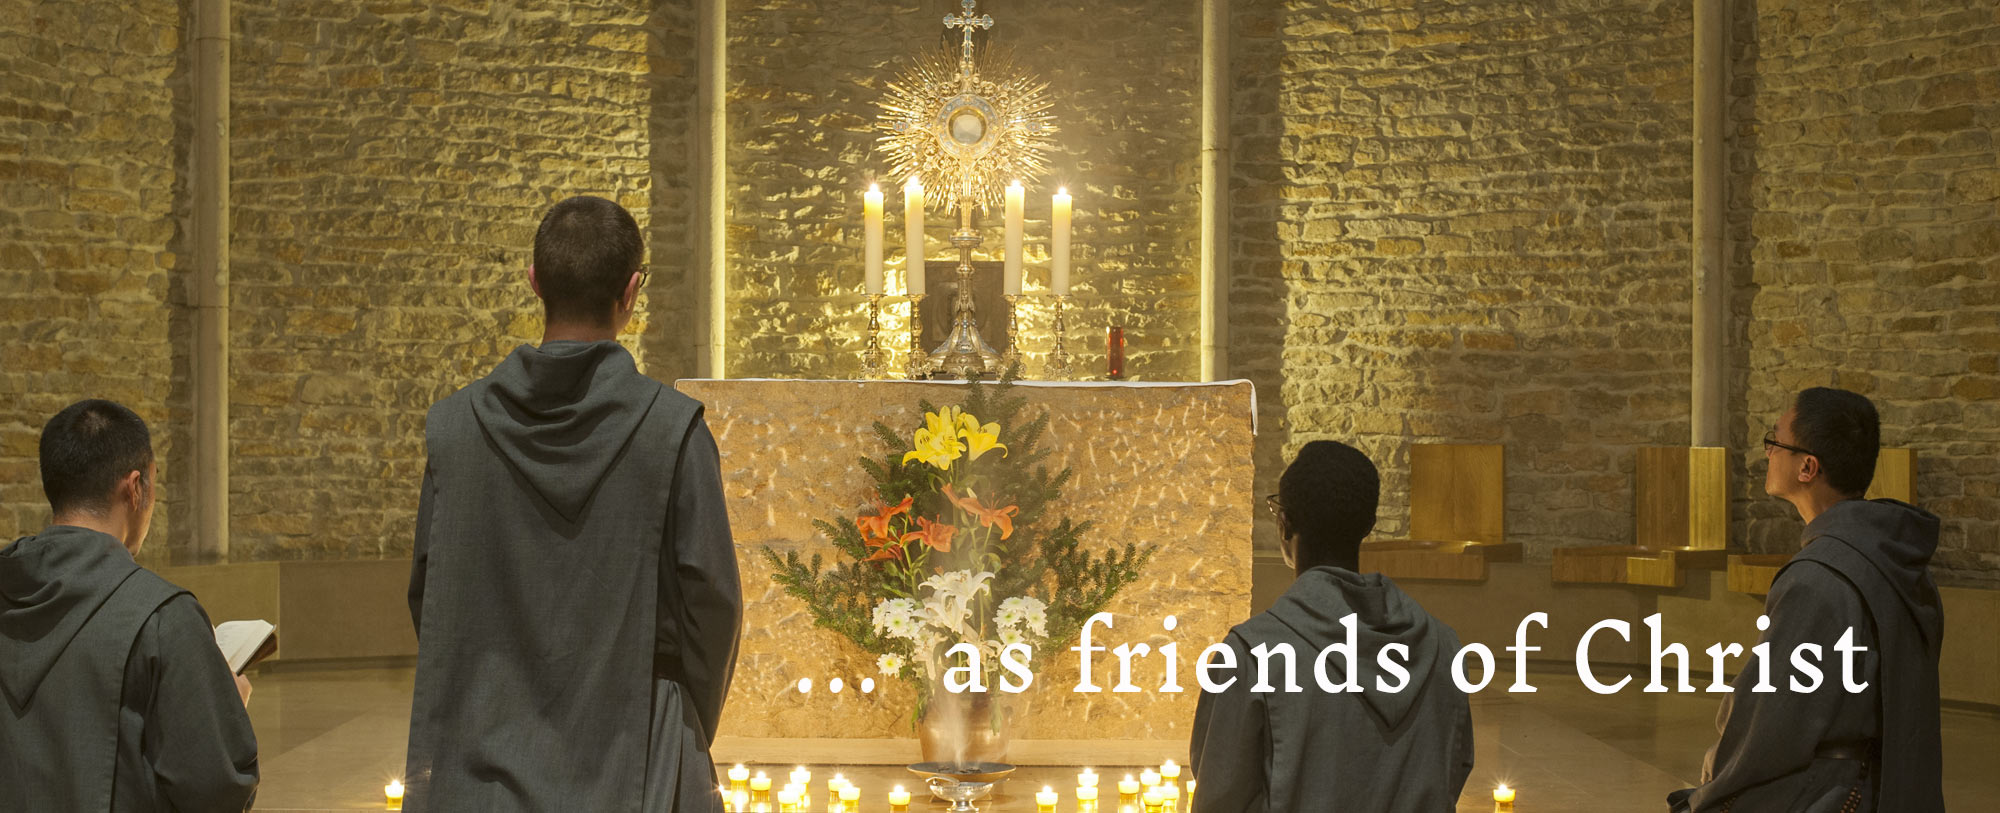 ... as friends of Christ